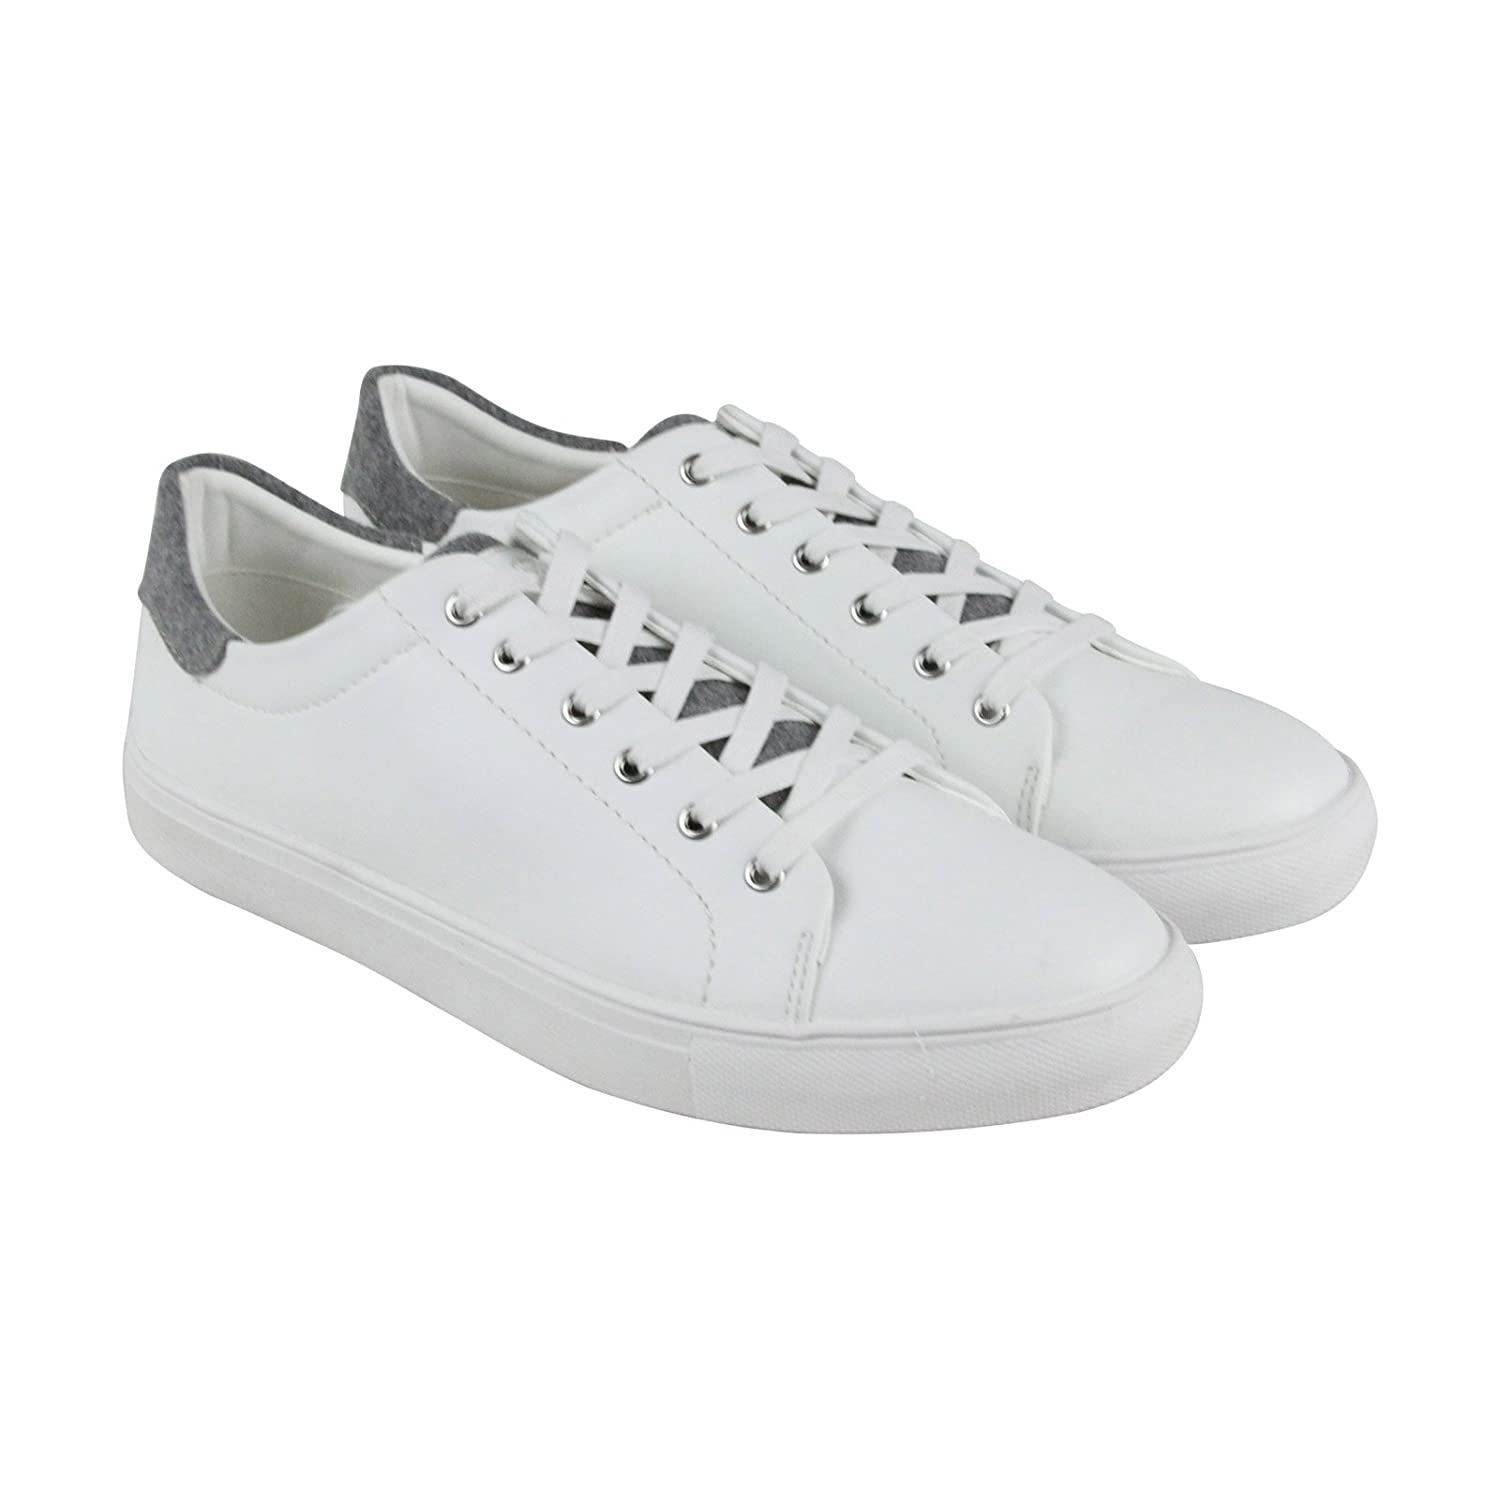 b472b3573d0 Steve Madden P-Bolstr Mens White Suede Lace Up Sneakers Shoes 9 ...